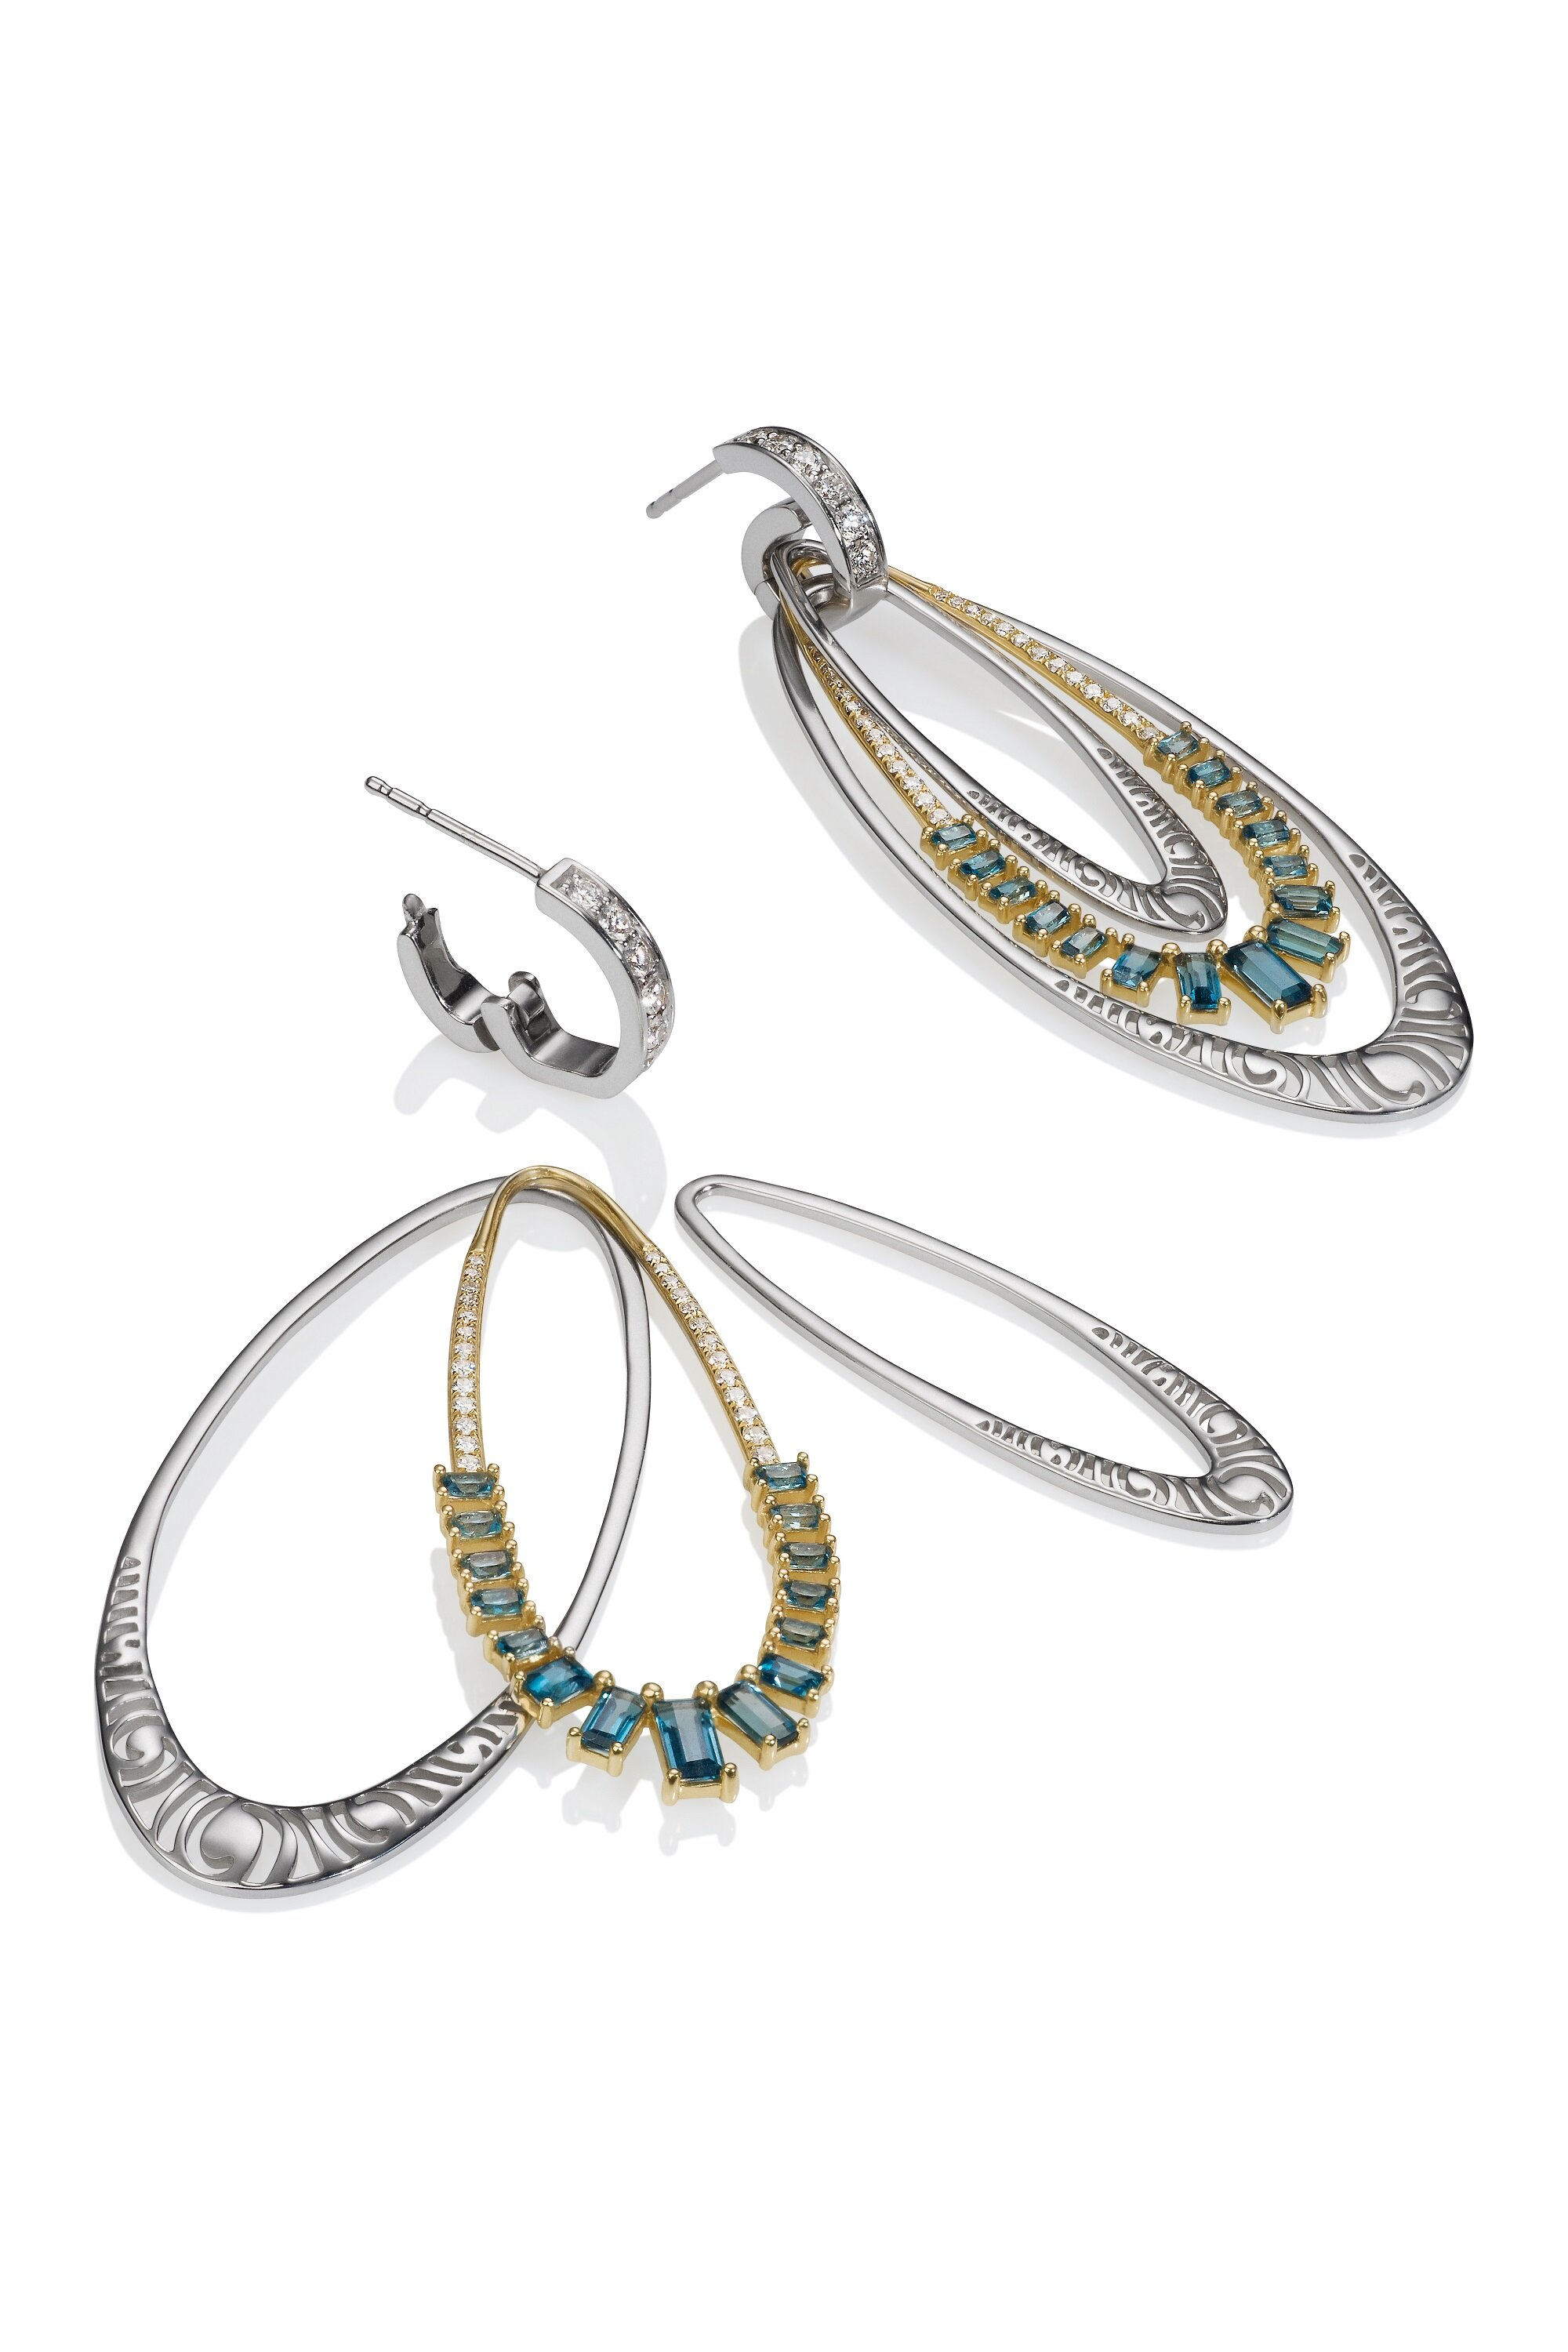 LYRA Baguette - 2 tone gold with diamonds and London Blue Topaz.jpg